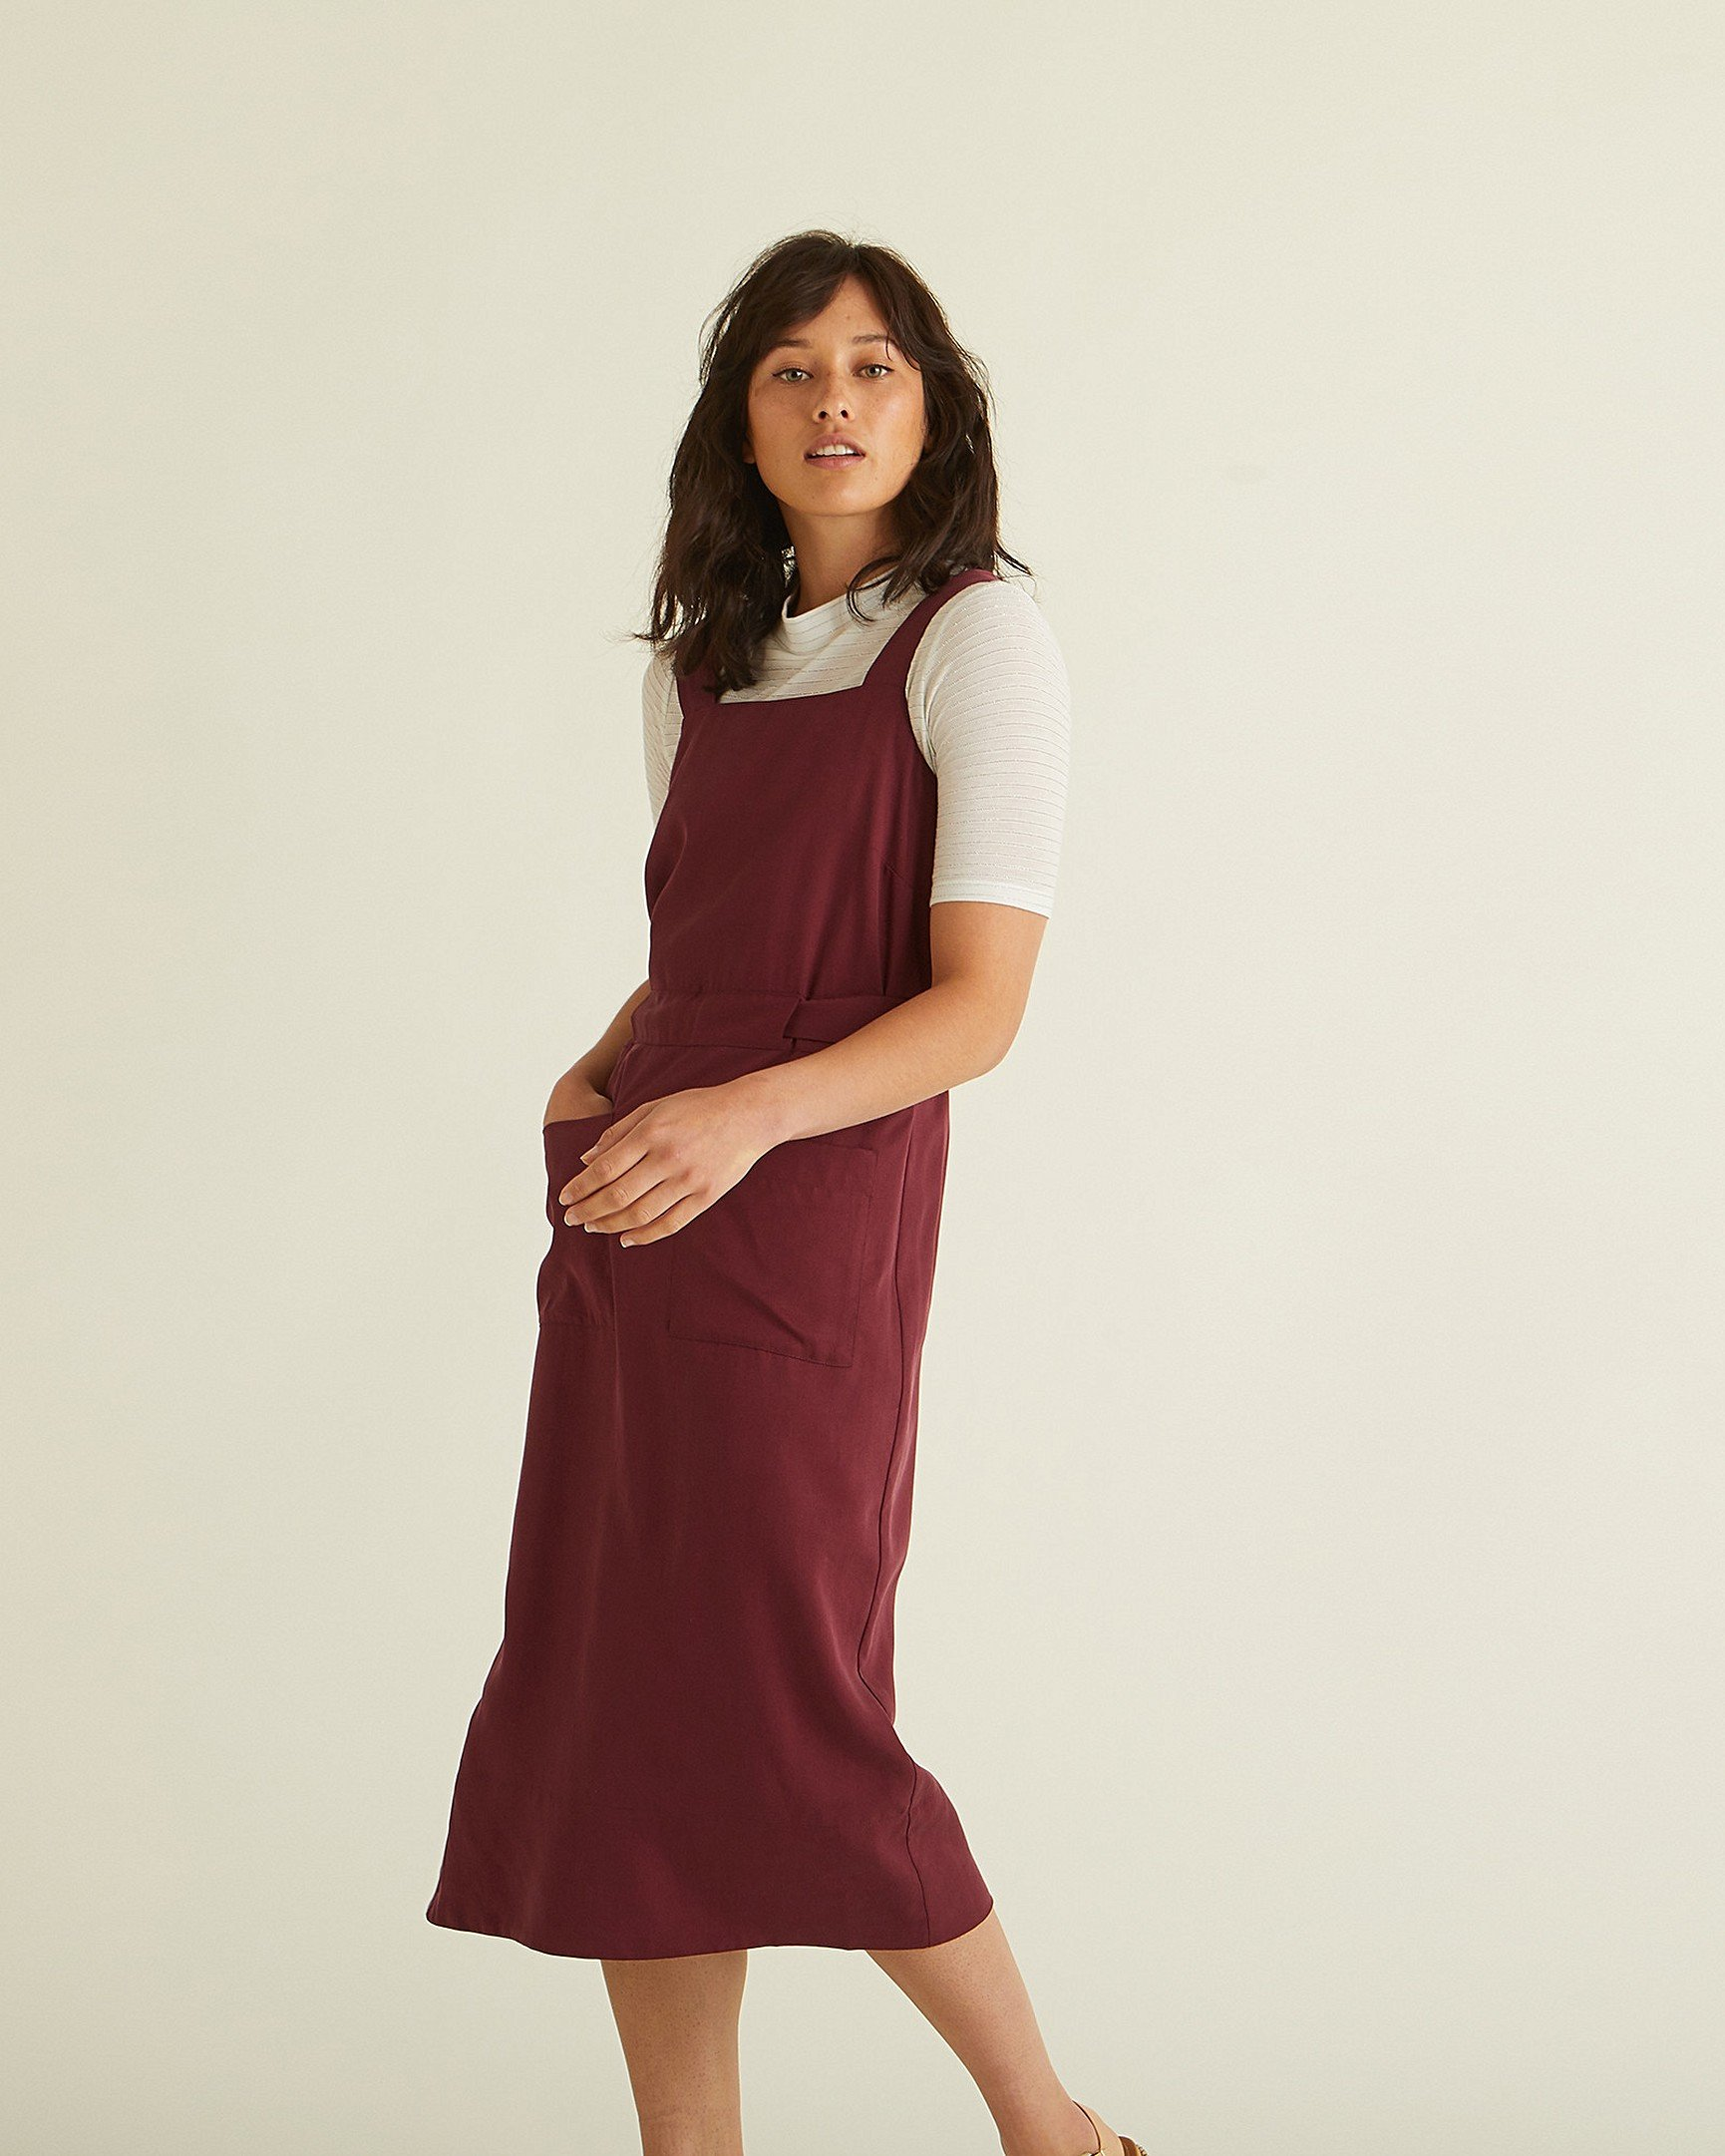 dcc43ace5f Dresses for Women | Summer Dresses UK | Oliver Bonas